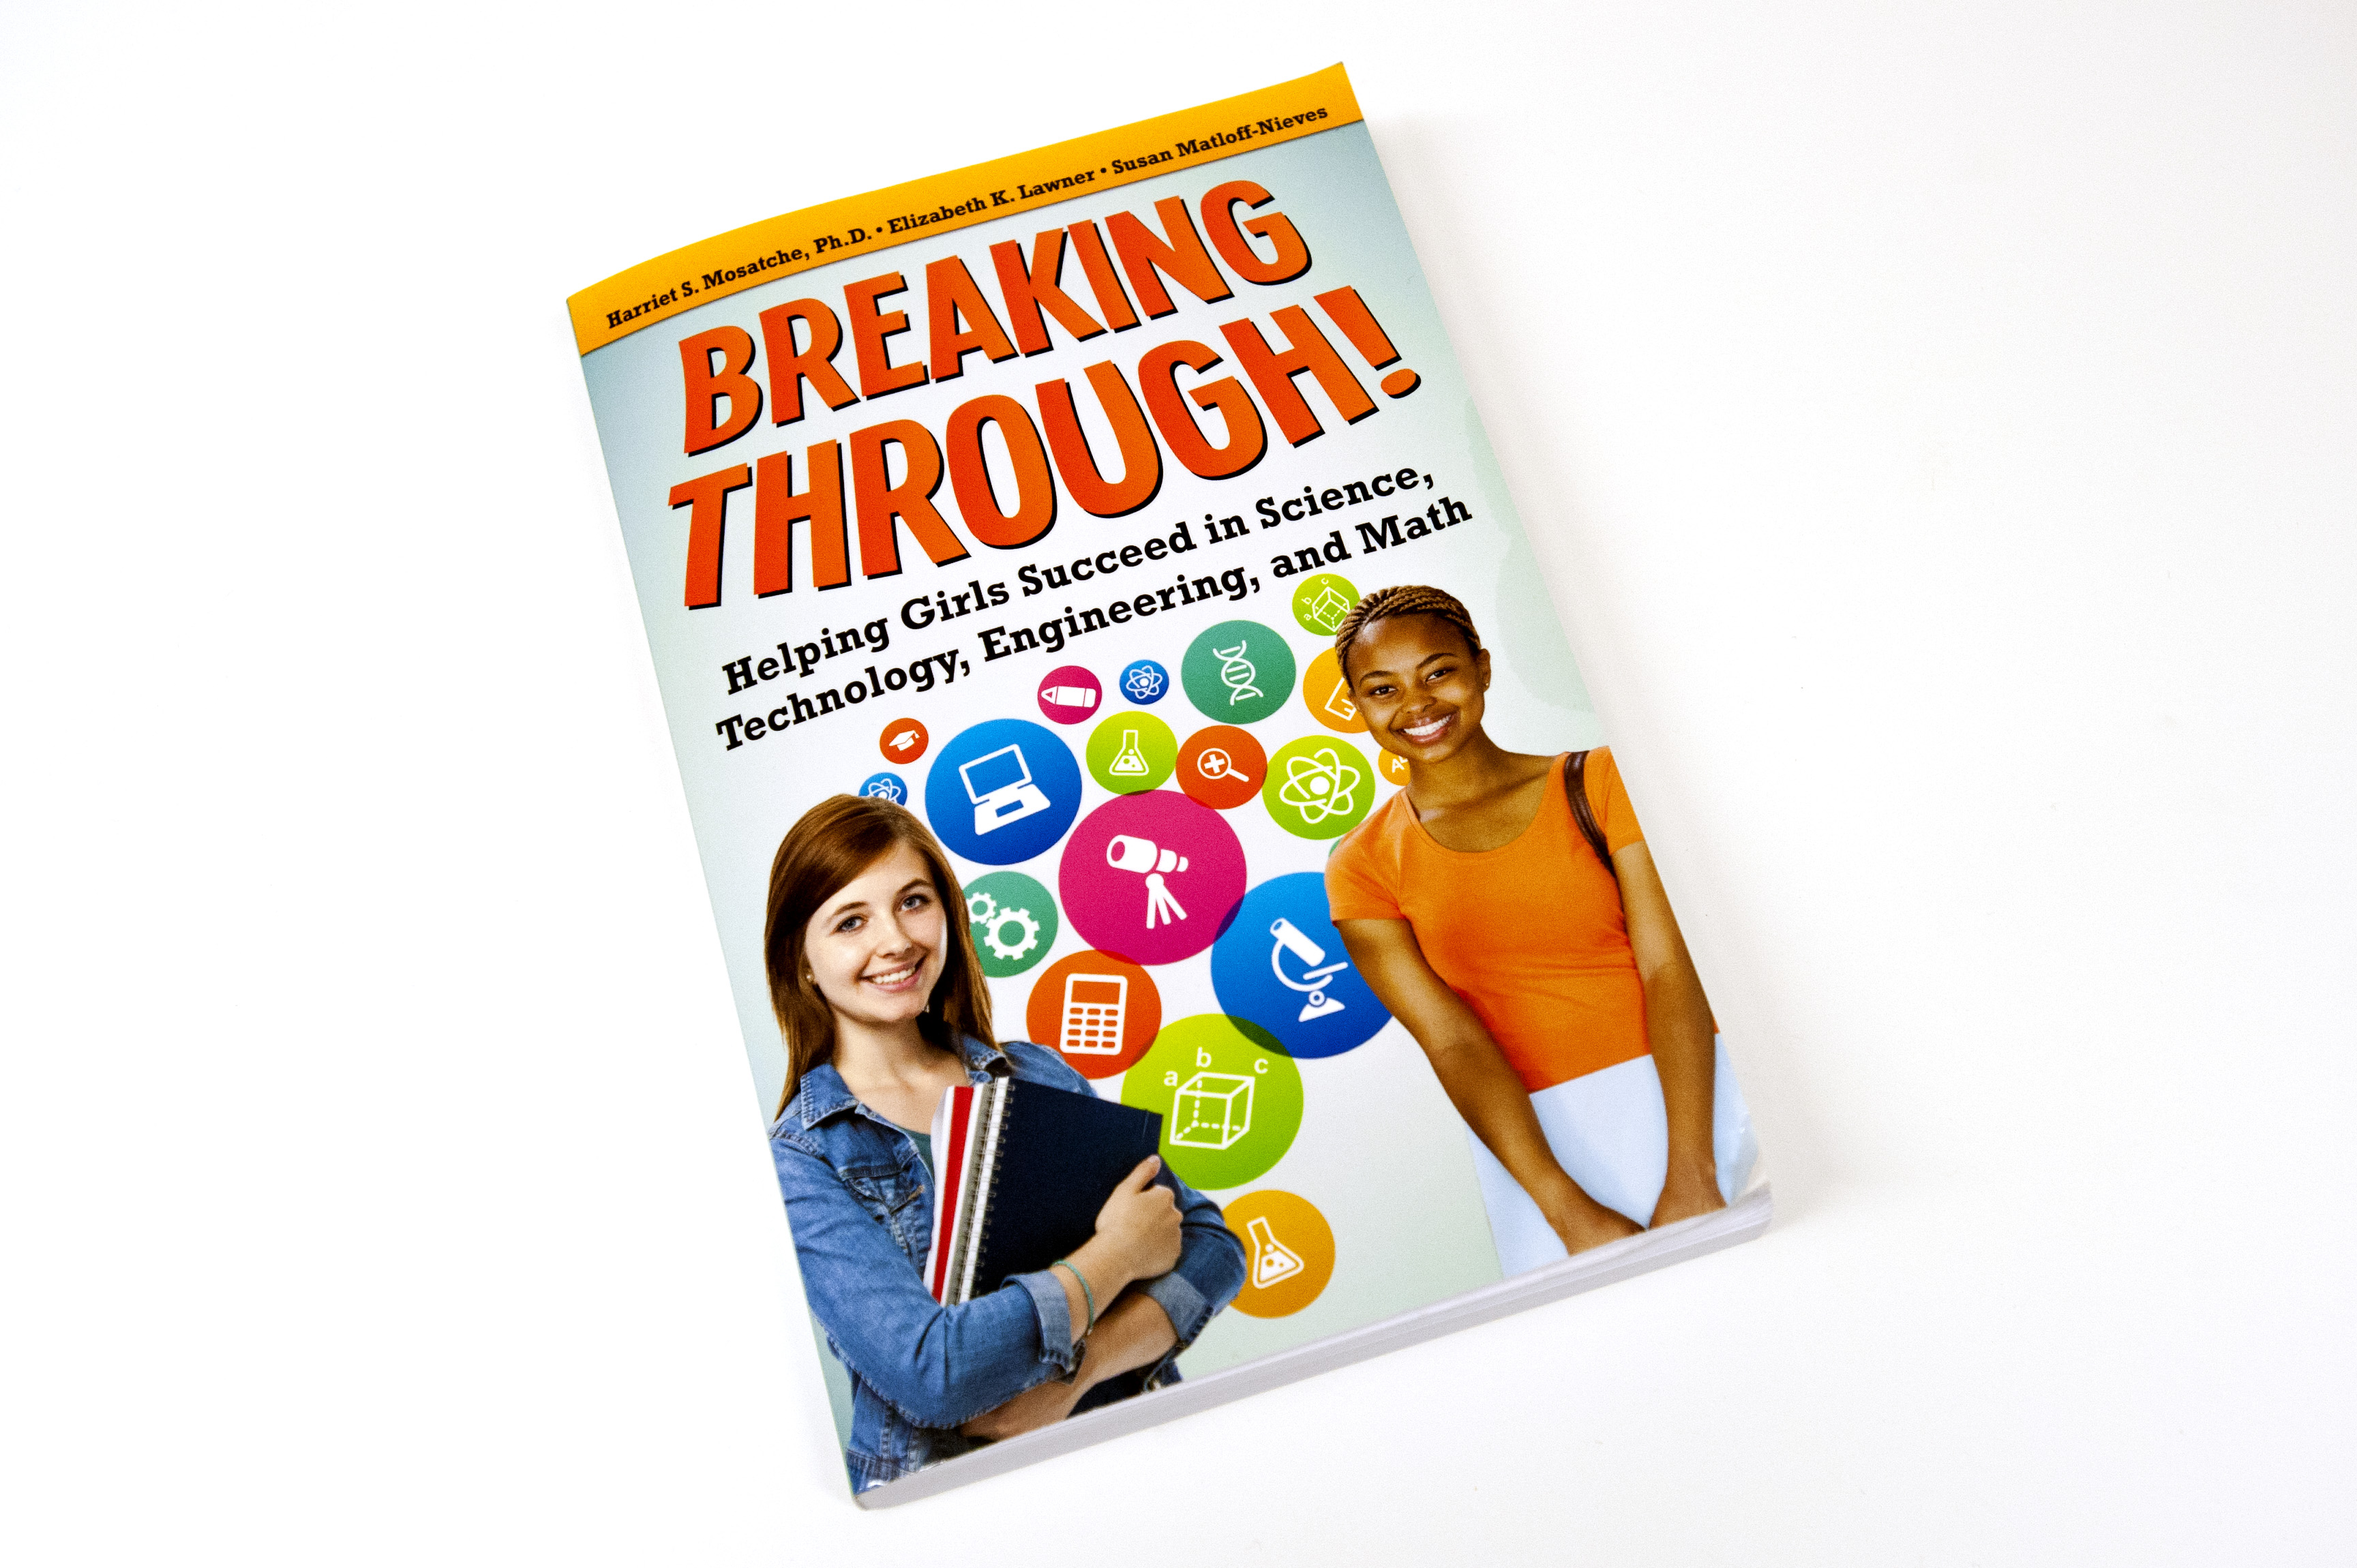 Book cover, 'Breaking Through, Helping Girls Succeed in Science, Technology, Engineering, and Math,' by Harriet S. Mosatche, Elizabeth K. Lawner, and Susan Matloff-Nieves. (Sean Flynn/UConn Photo)